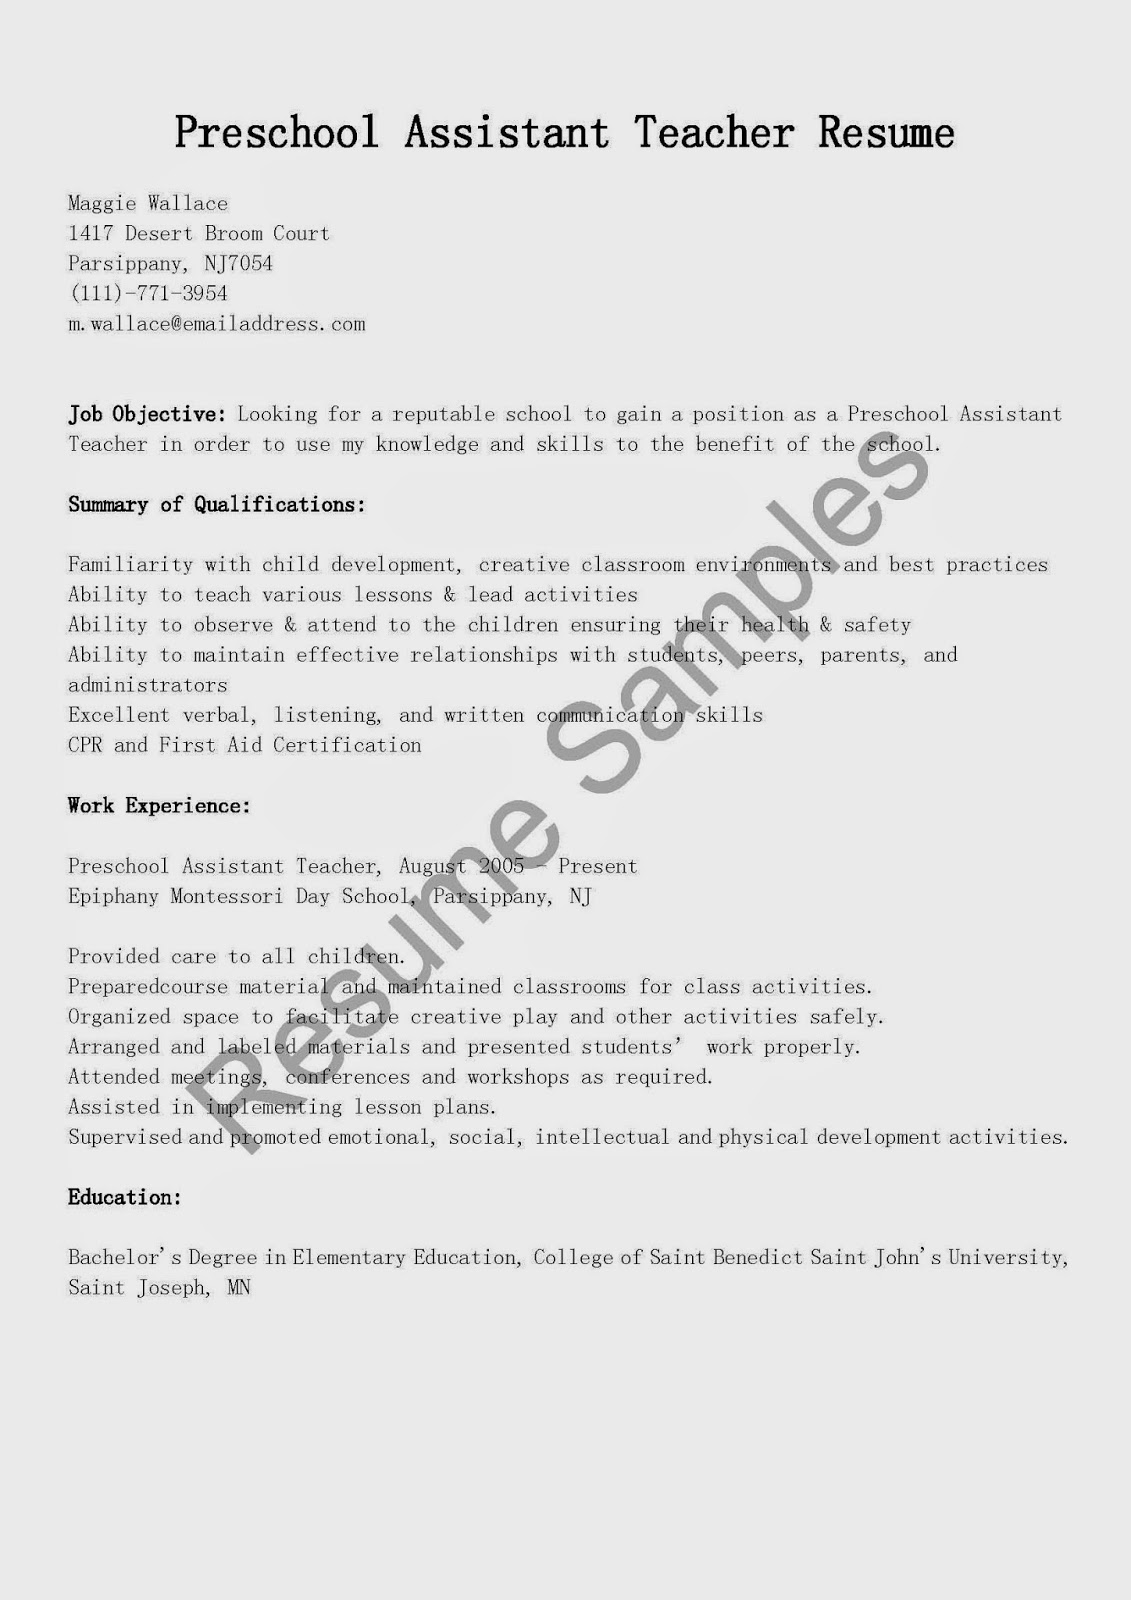 Cover Letter Sample Kindergarten Teacher   Original Papers